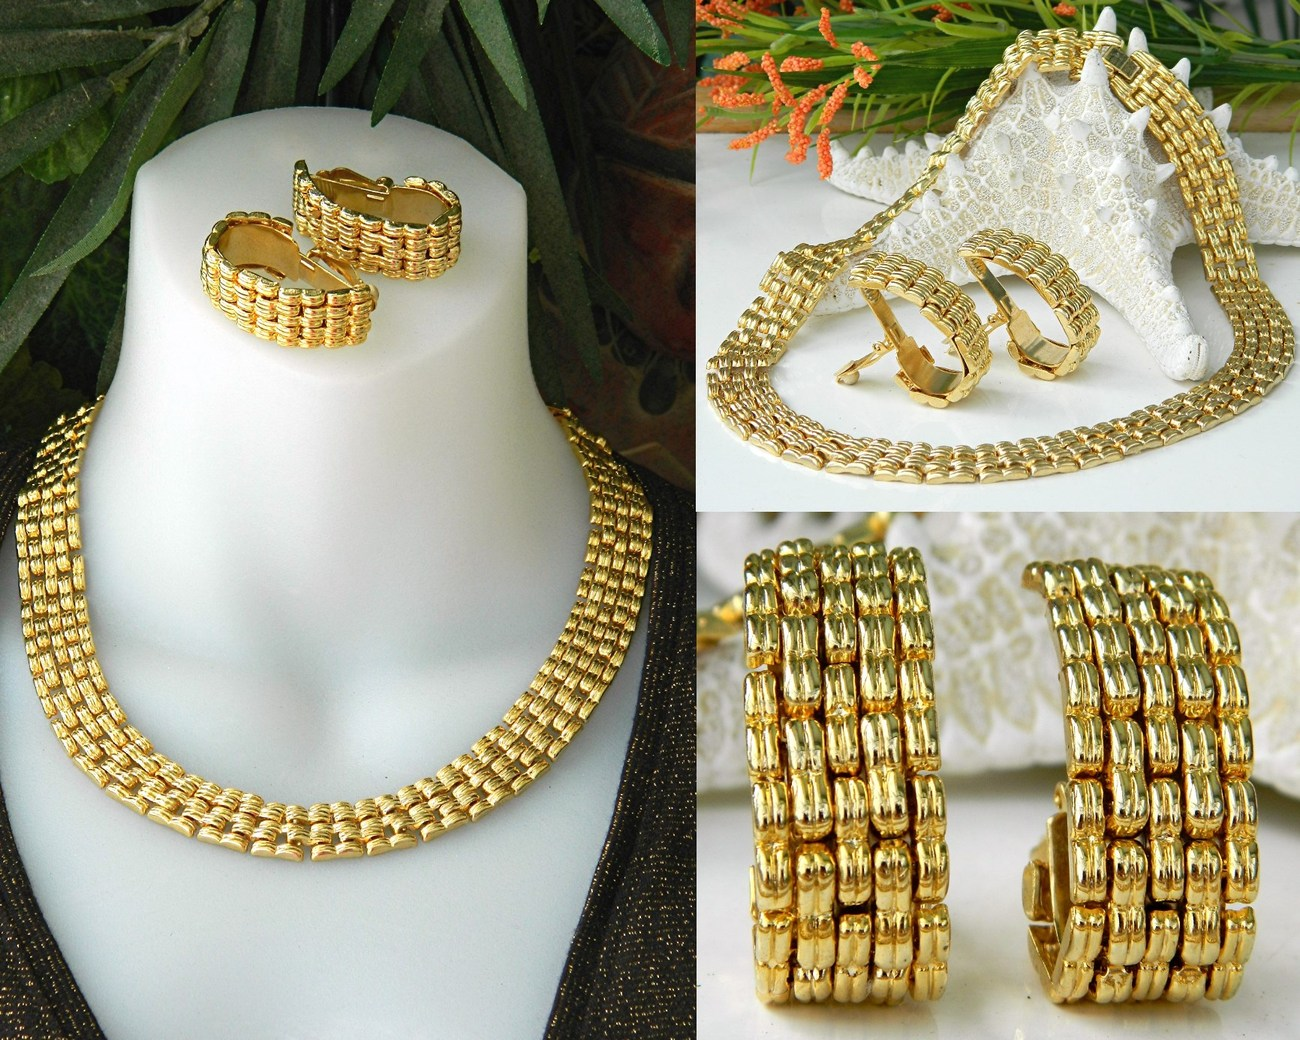 Vintage Collar Choker Necklace Earrings Gold Tone Cleopatra